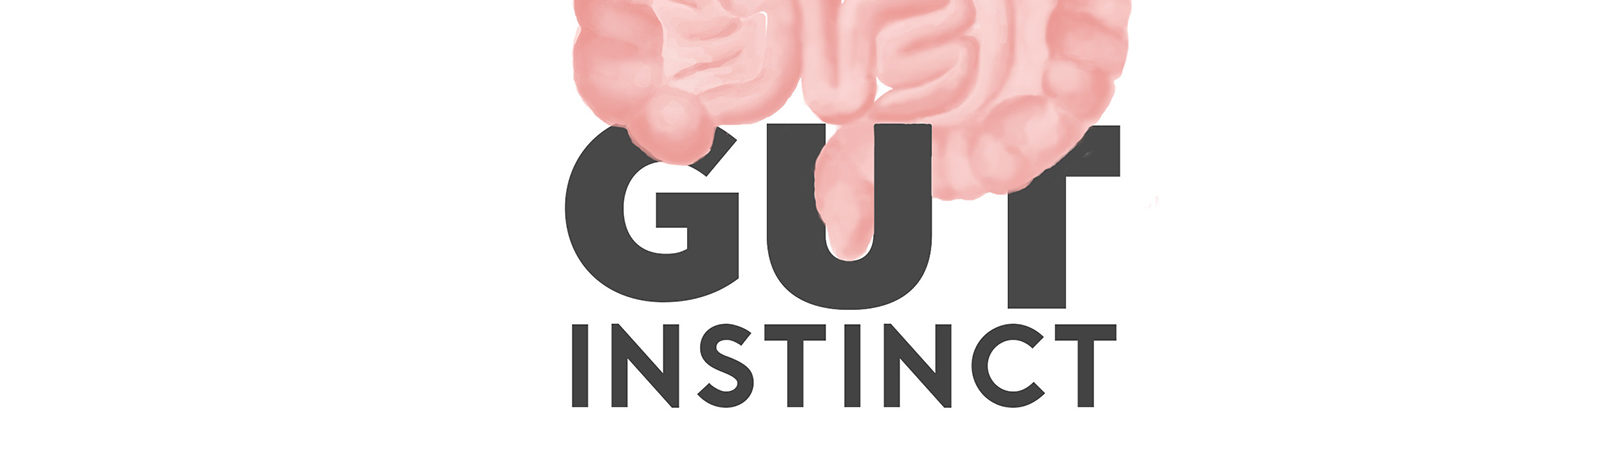 Gut Instinct logo